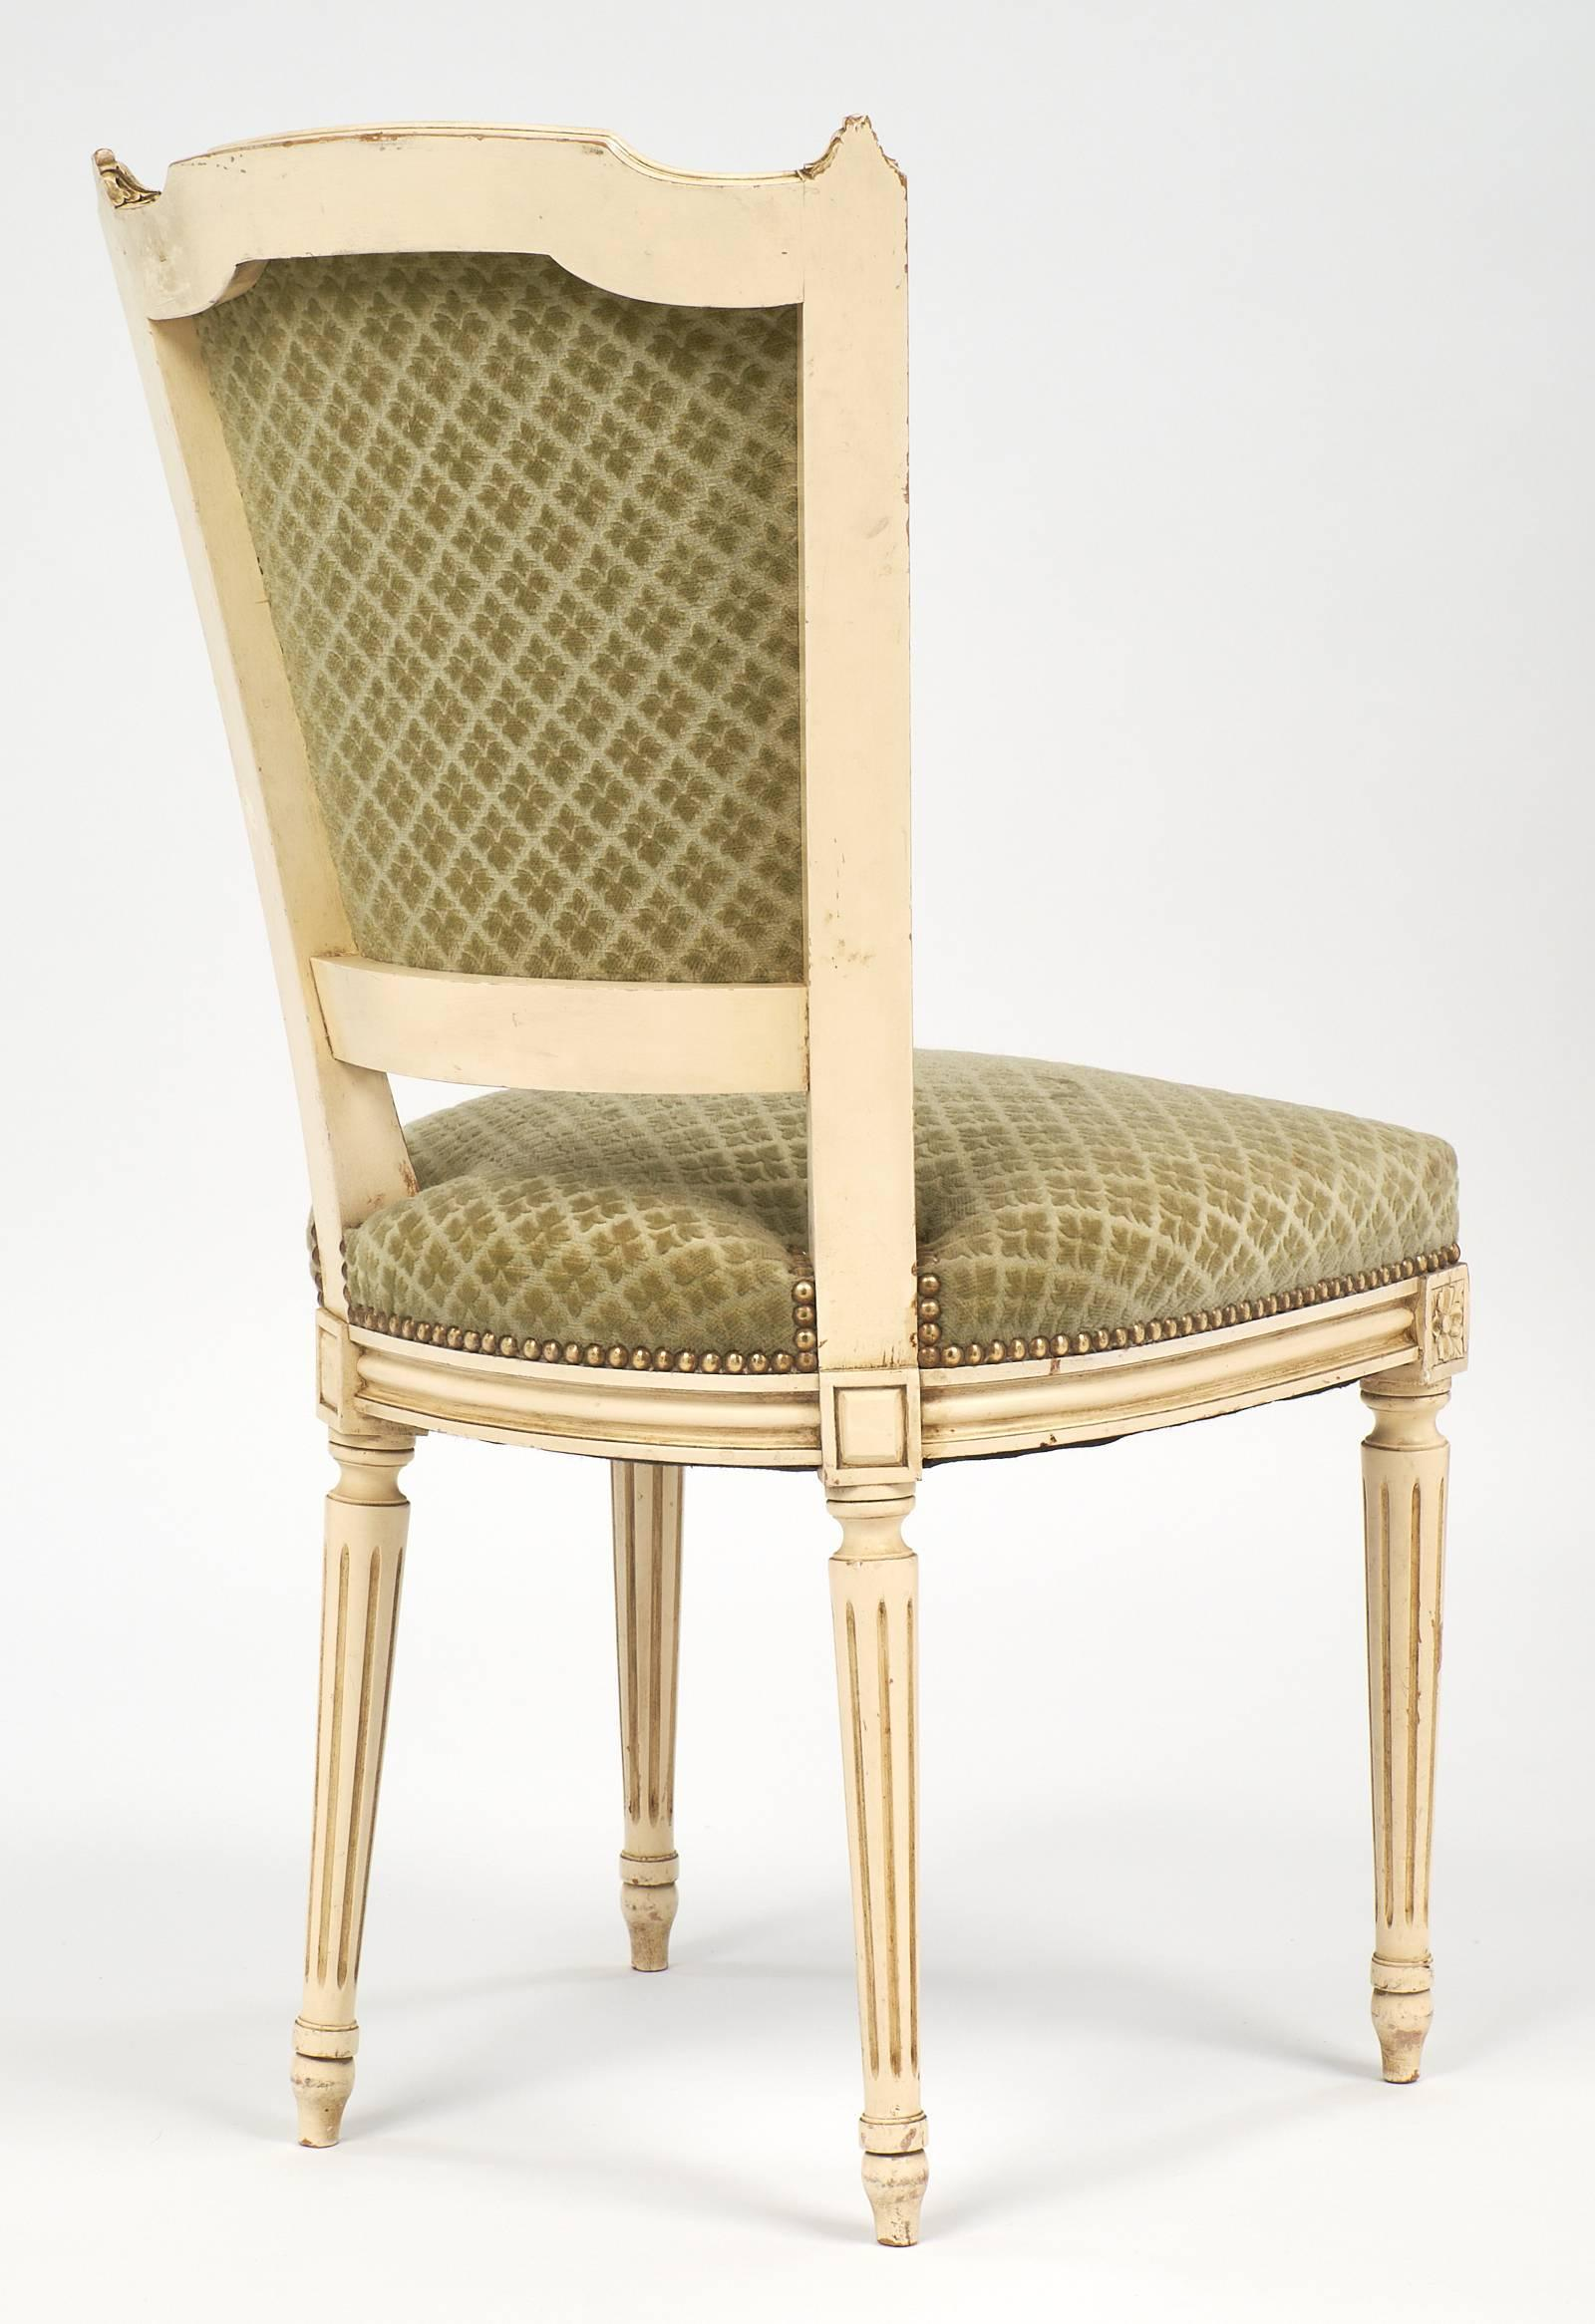 Attirant Set Of Antique French Louis XVI Style Sage Green Dining Chairs For Sale At  1stdibs